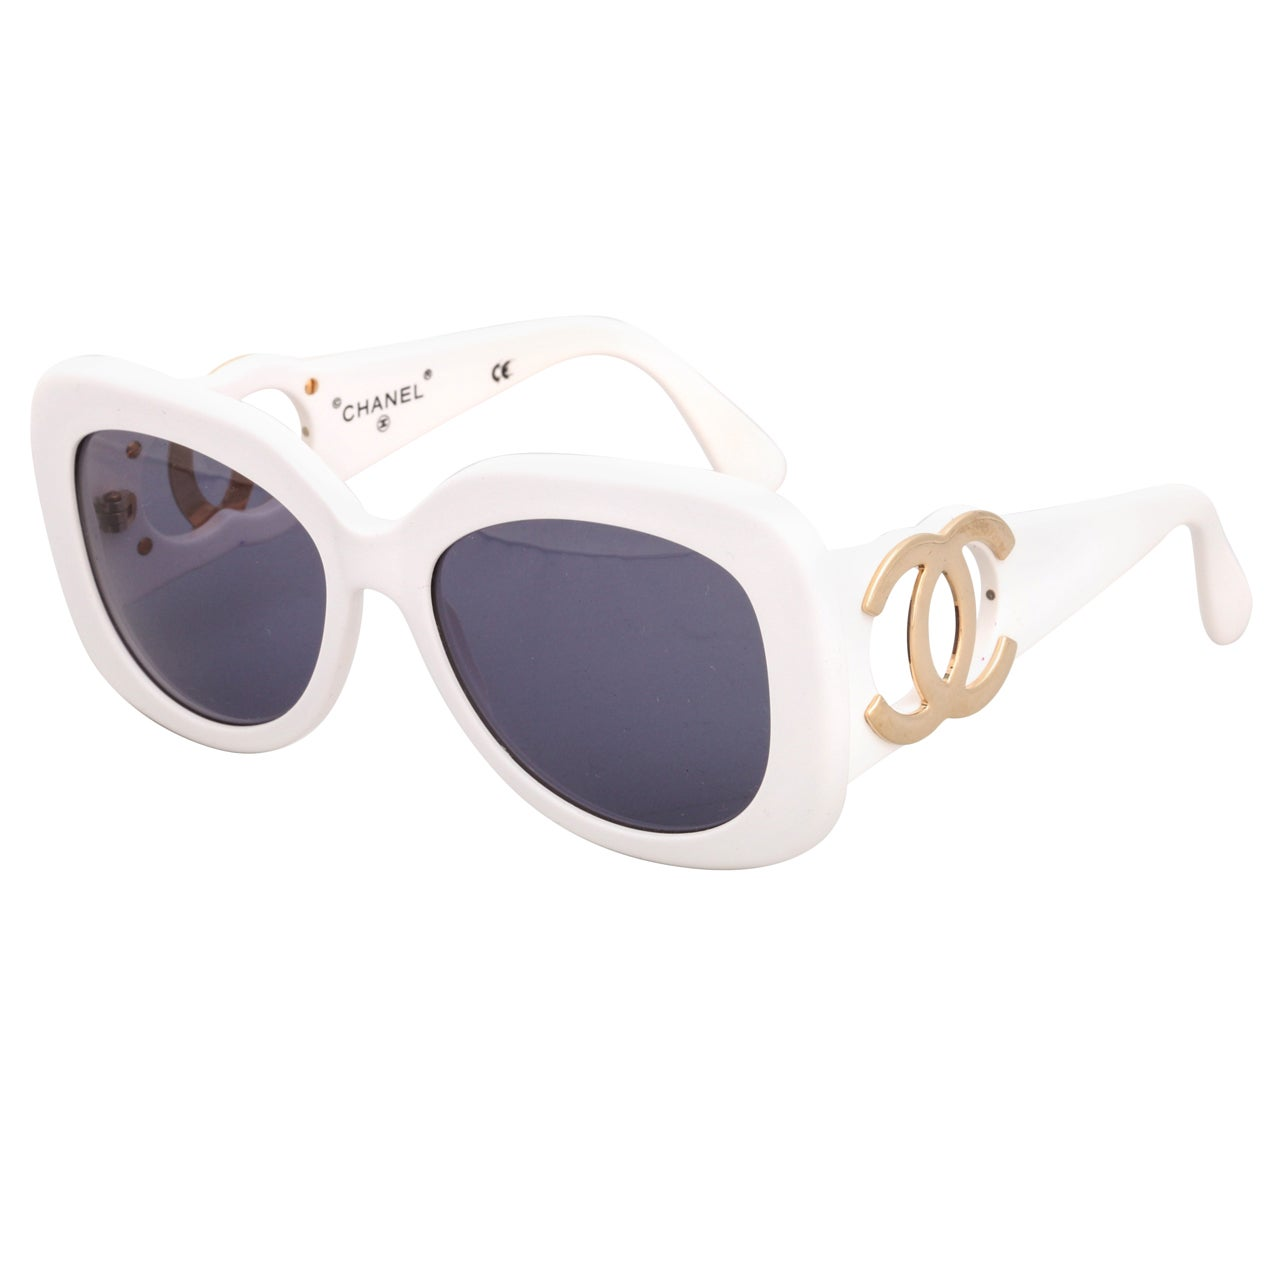 Chanel White Sunglasses  chanel white sunglasses with gold cc at 1stdibs